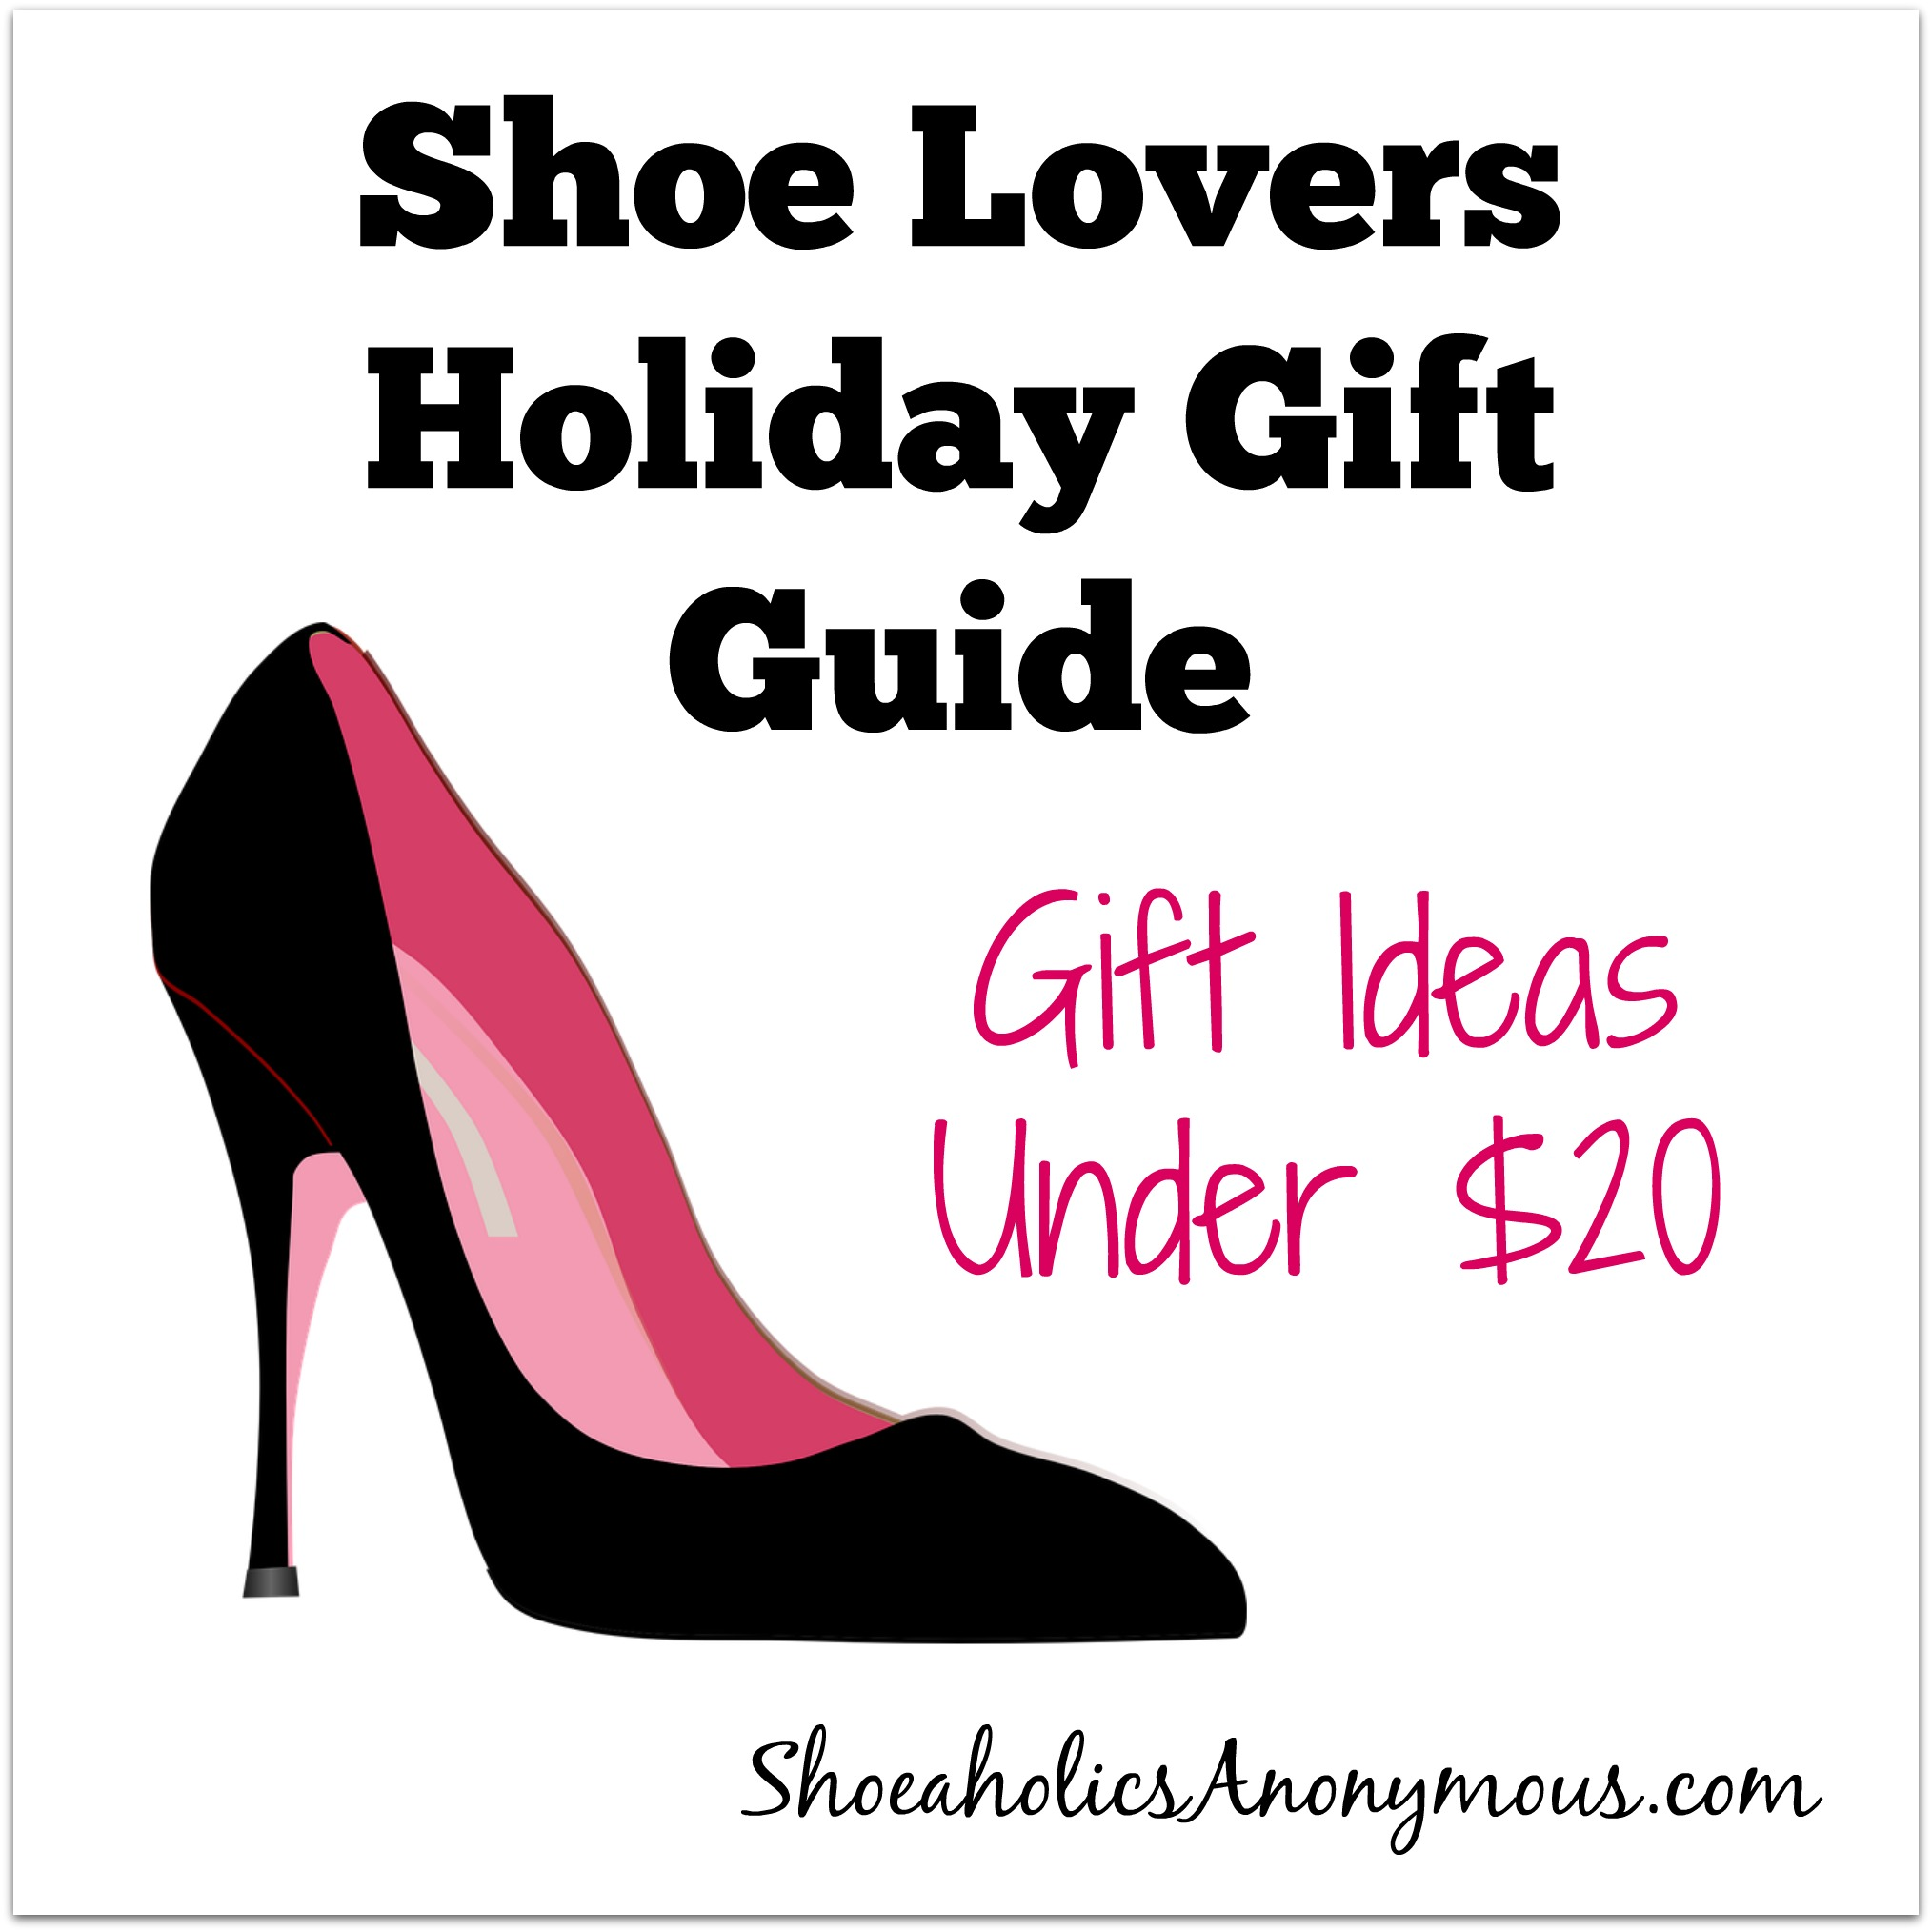 Shoe Lovers Holiday Gift Guide: 5 Gift Ideas Under $20